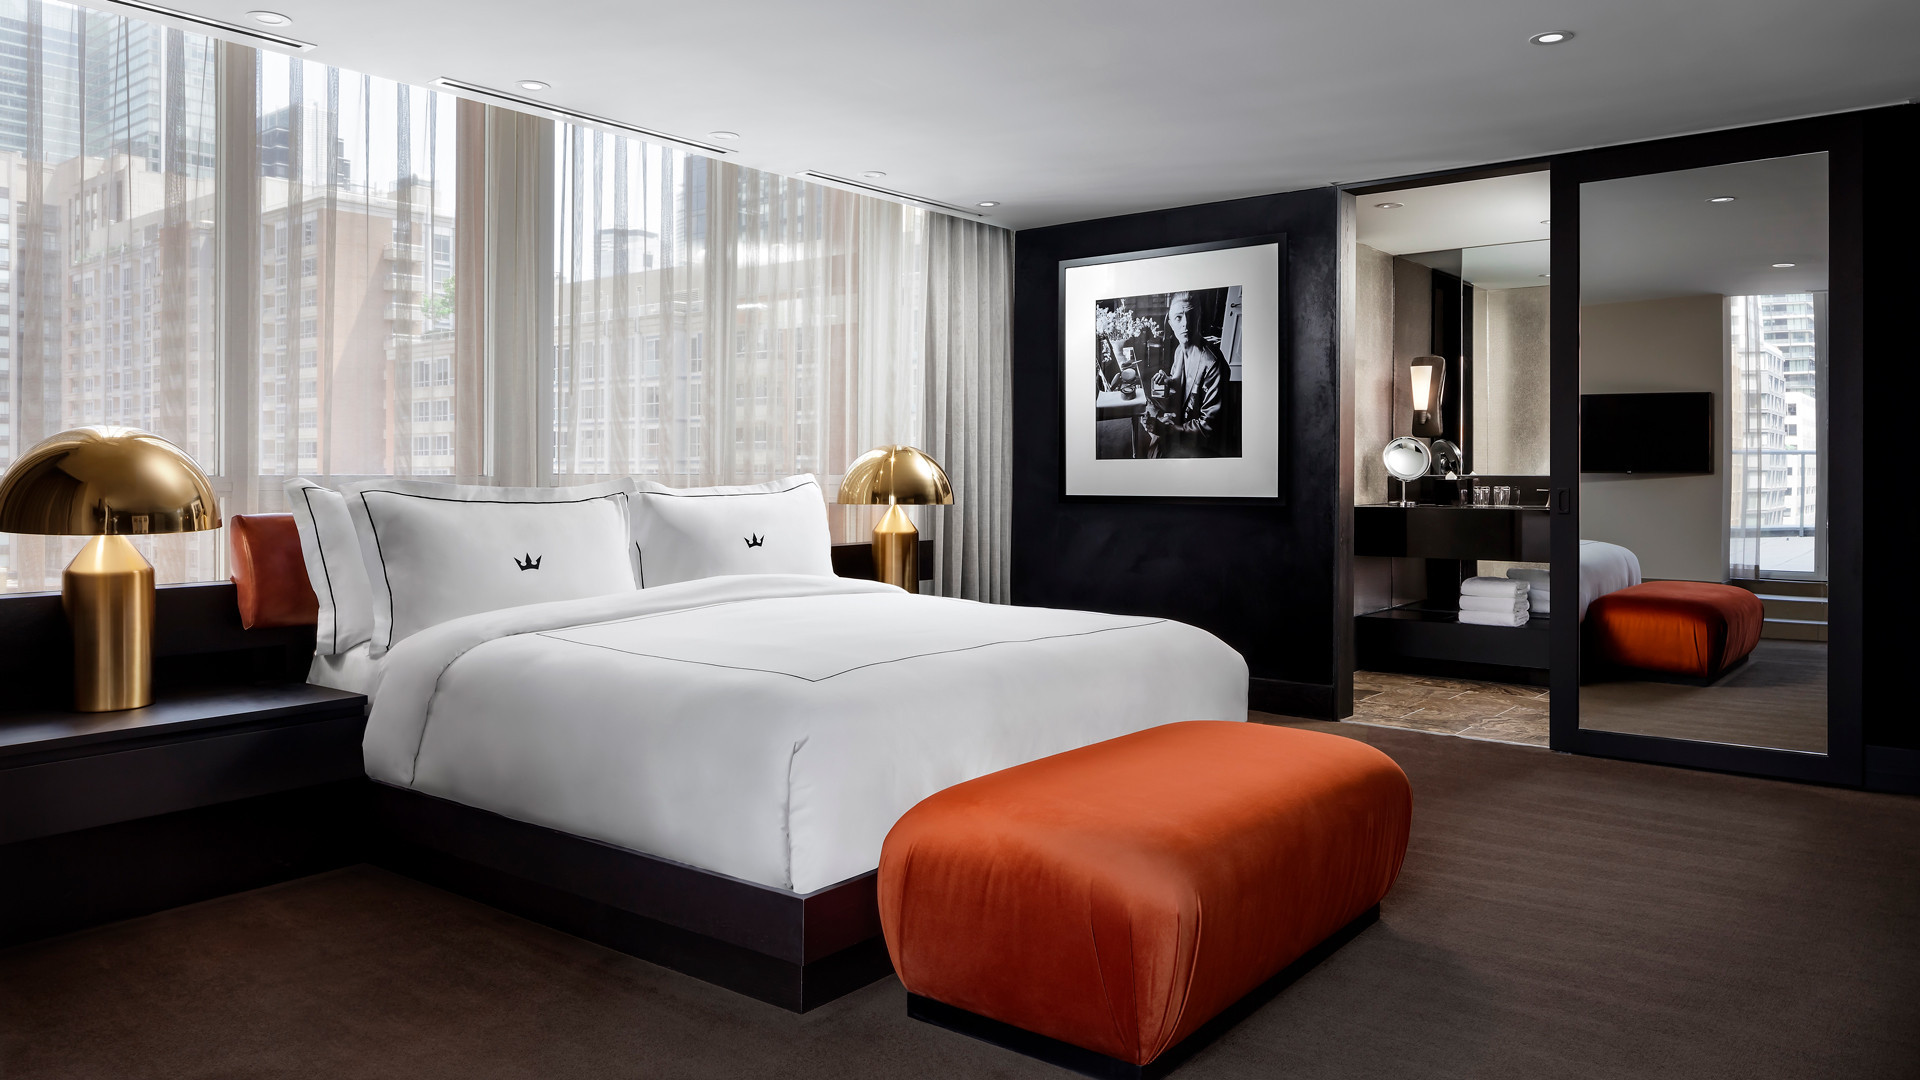 One of the Bisha's guest rooms